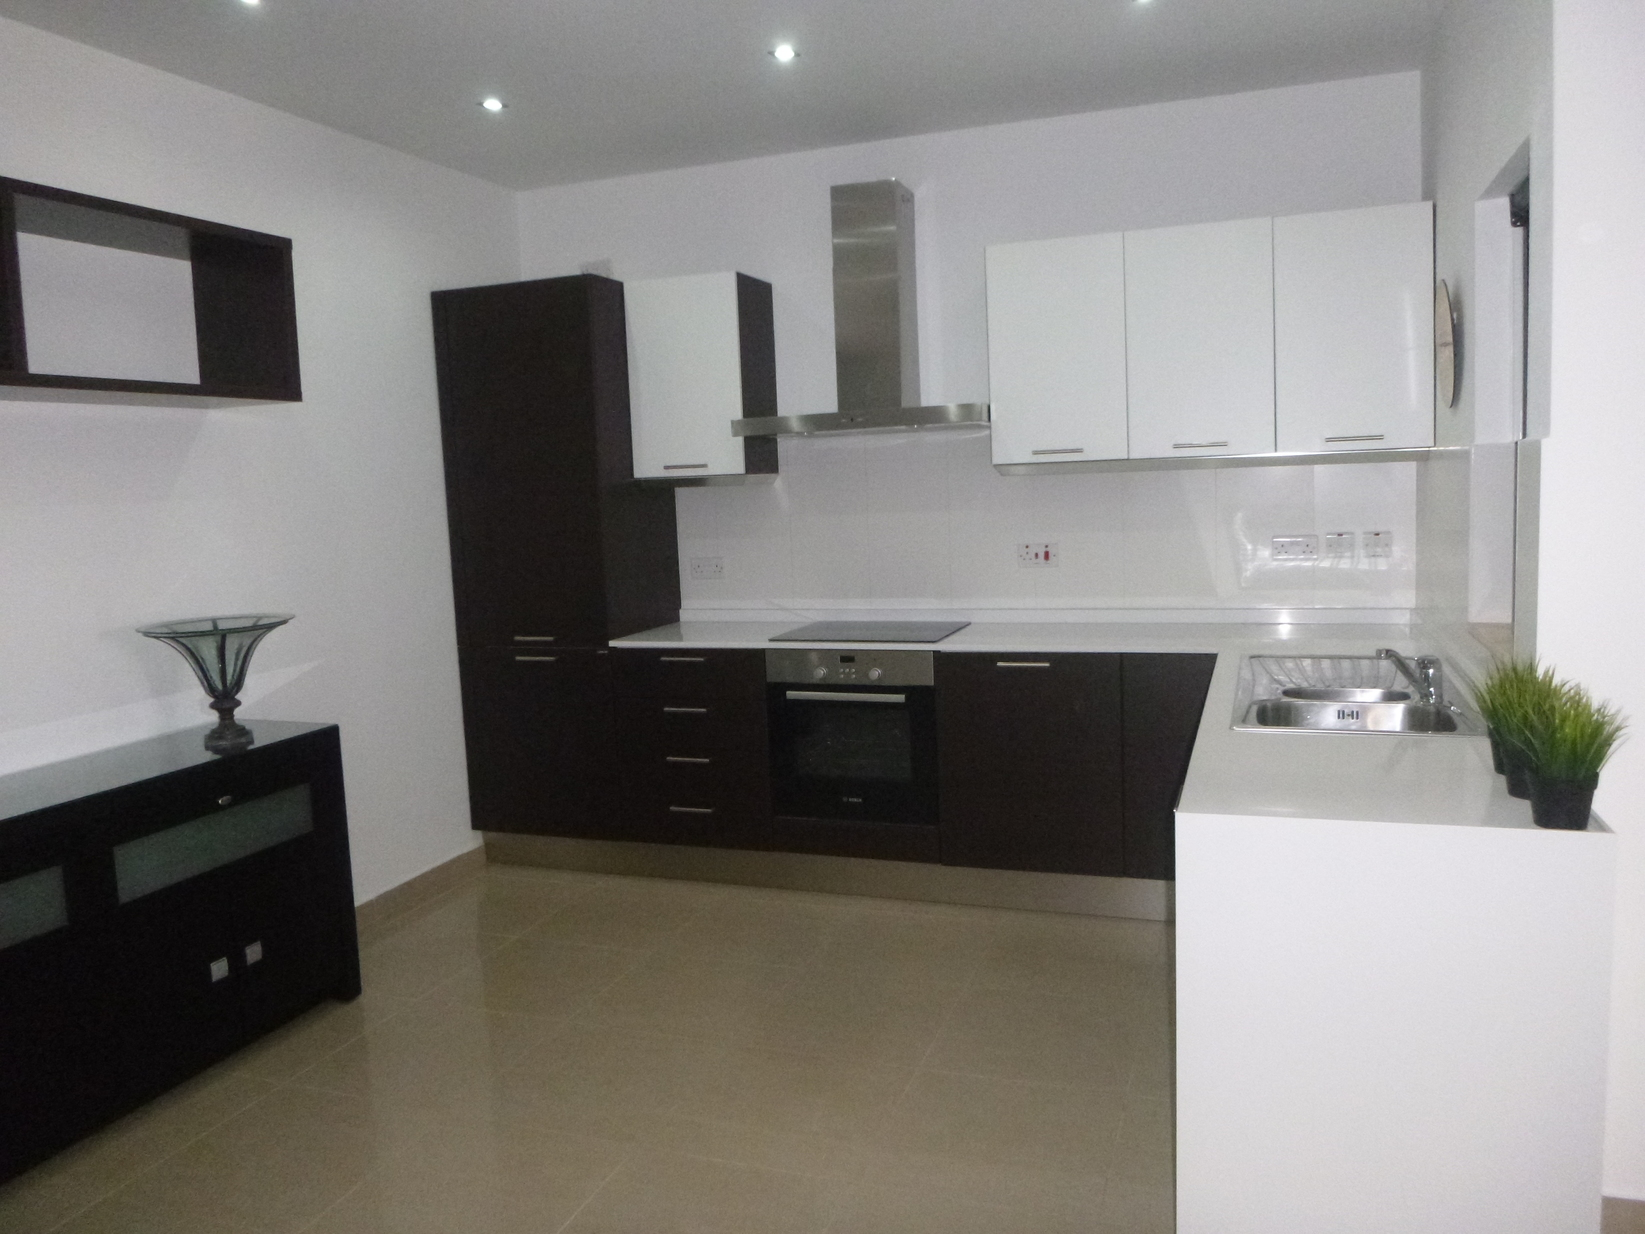 3 bed Apartment For Rent in Ibragg, Ibragg - thumb 8